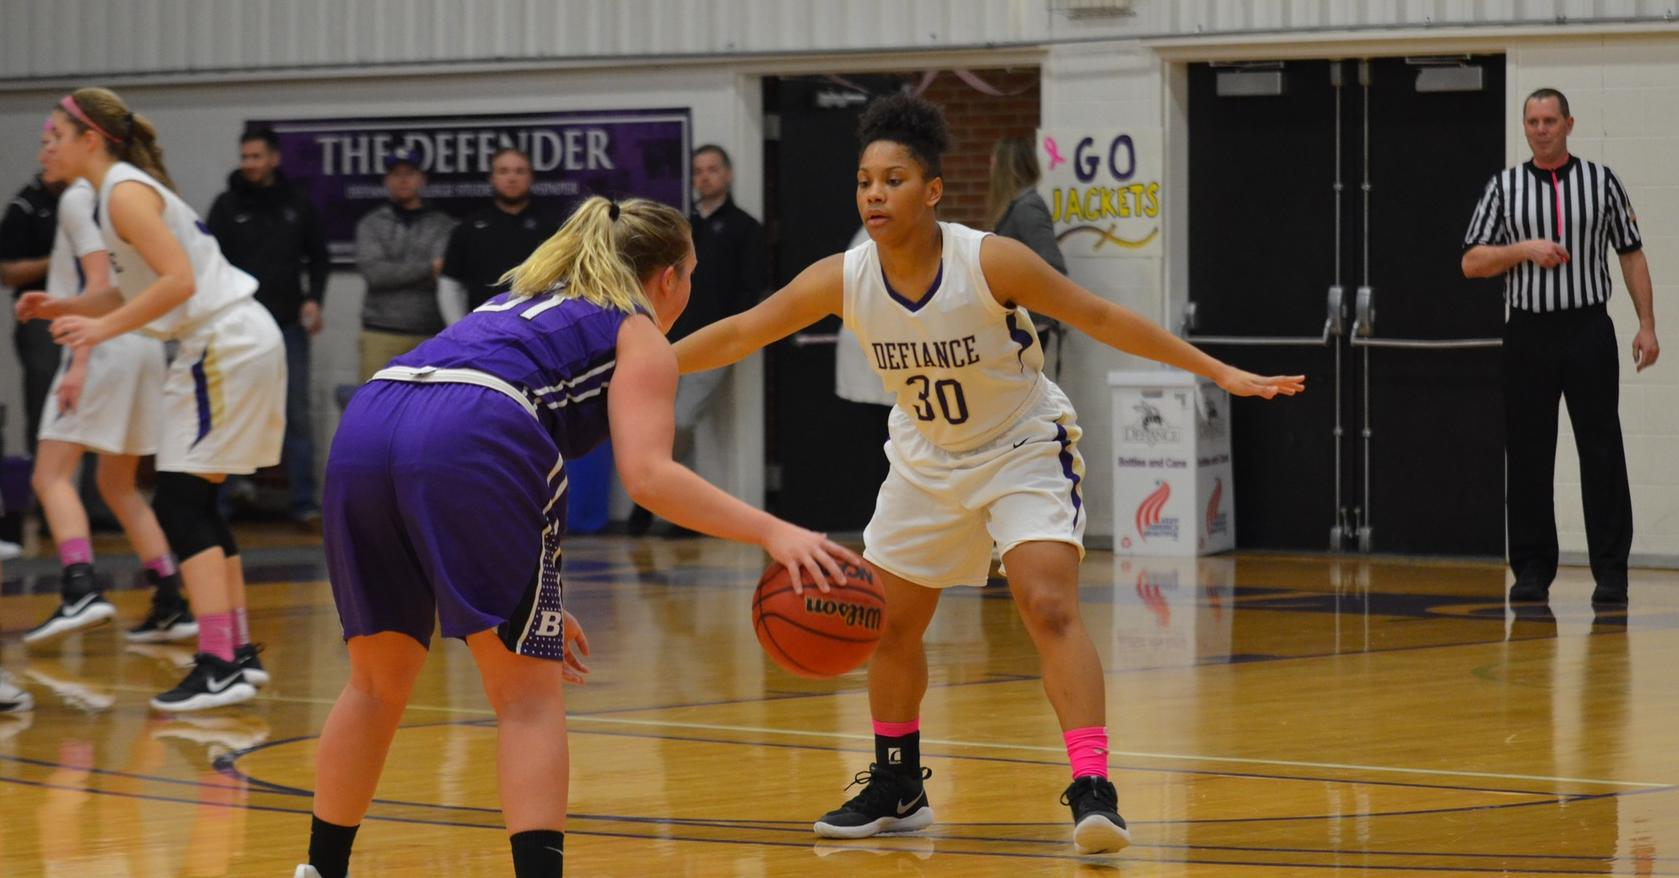 Women's Basketball Struggles in Match-up with Bluffton